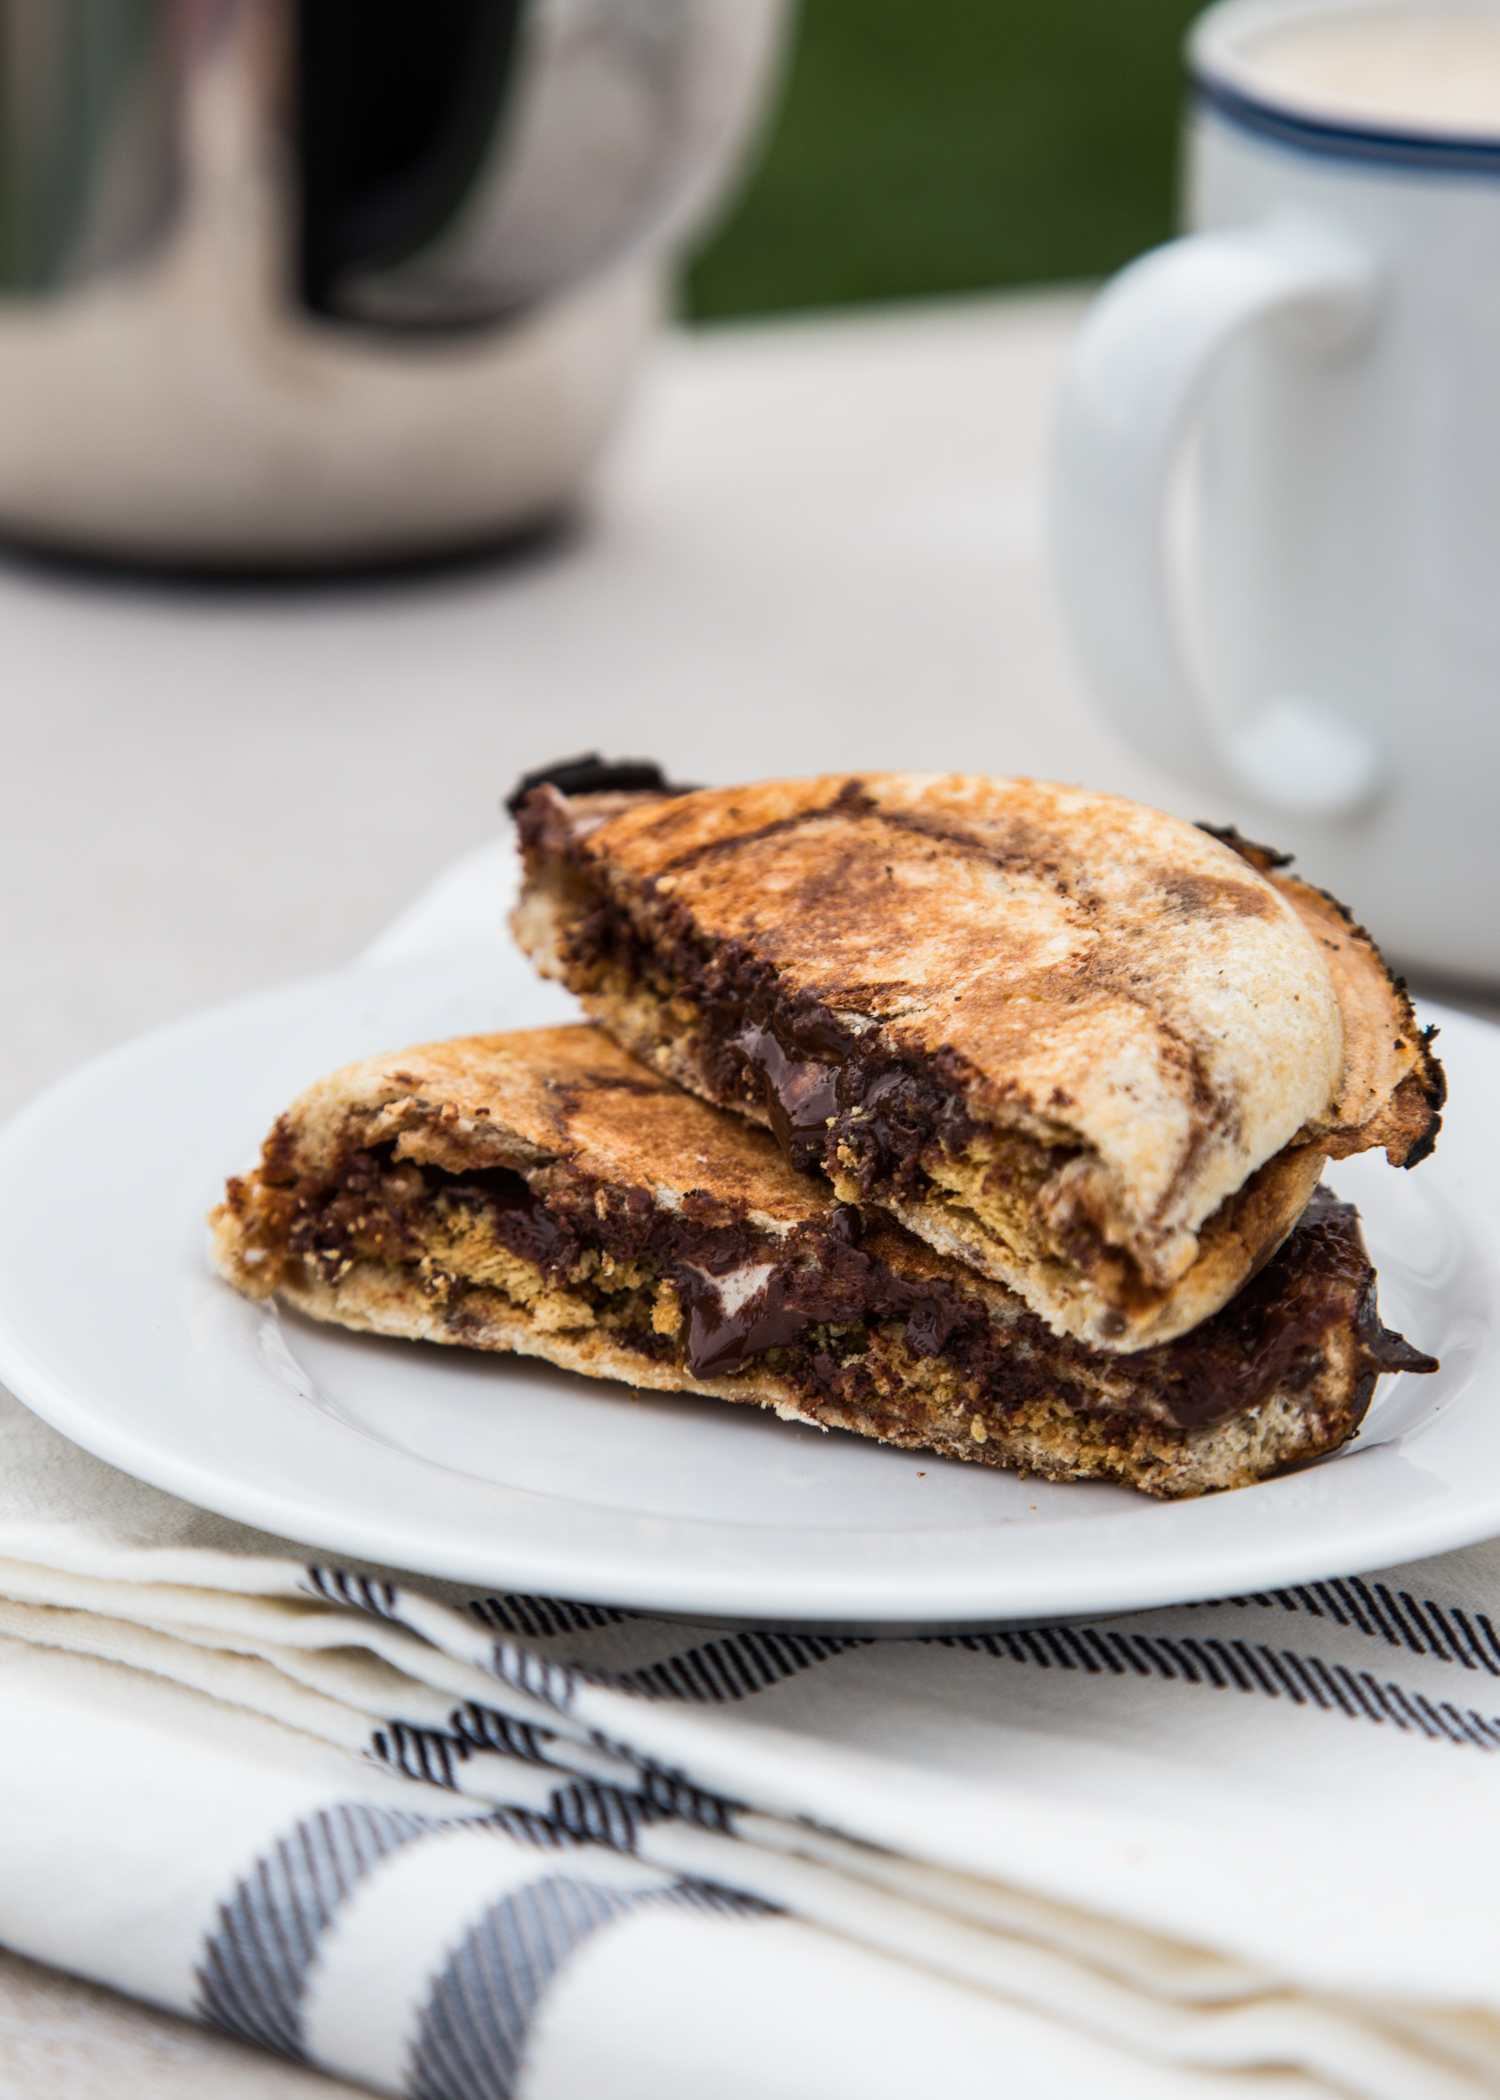 S'mores Pudgy Pies made with Campfire® Marshmallows, chocolate chips, crushed graham crackers all wrapped up in cinnamon swirl bread